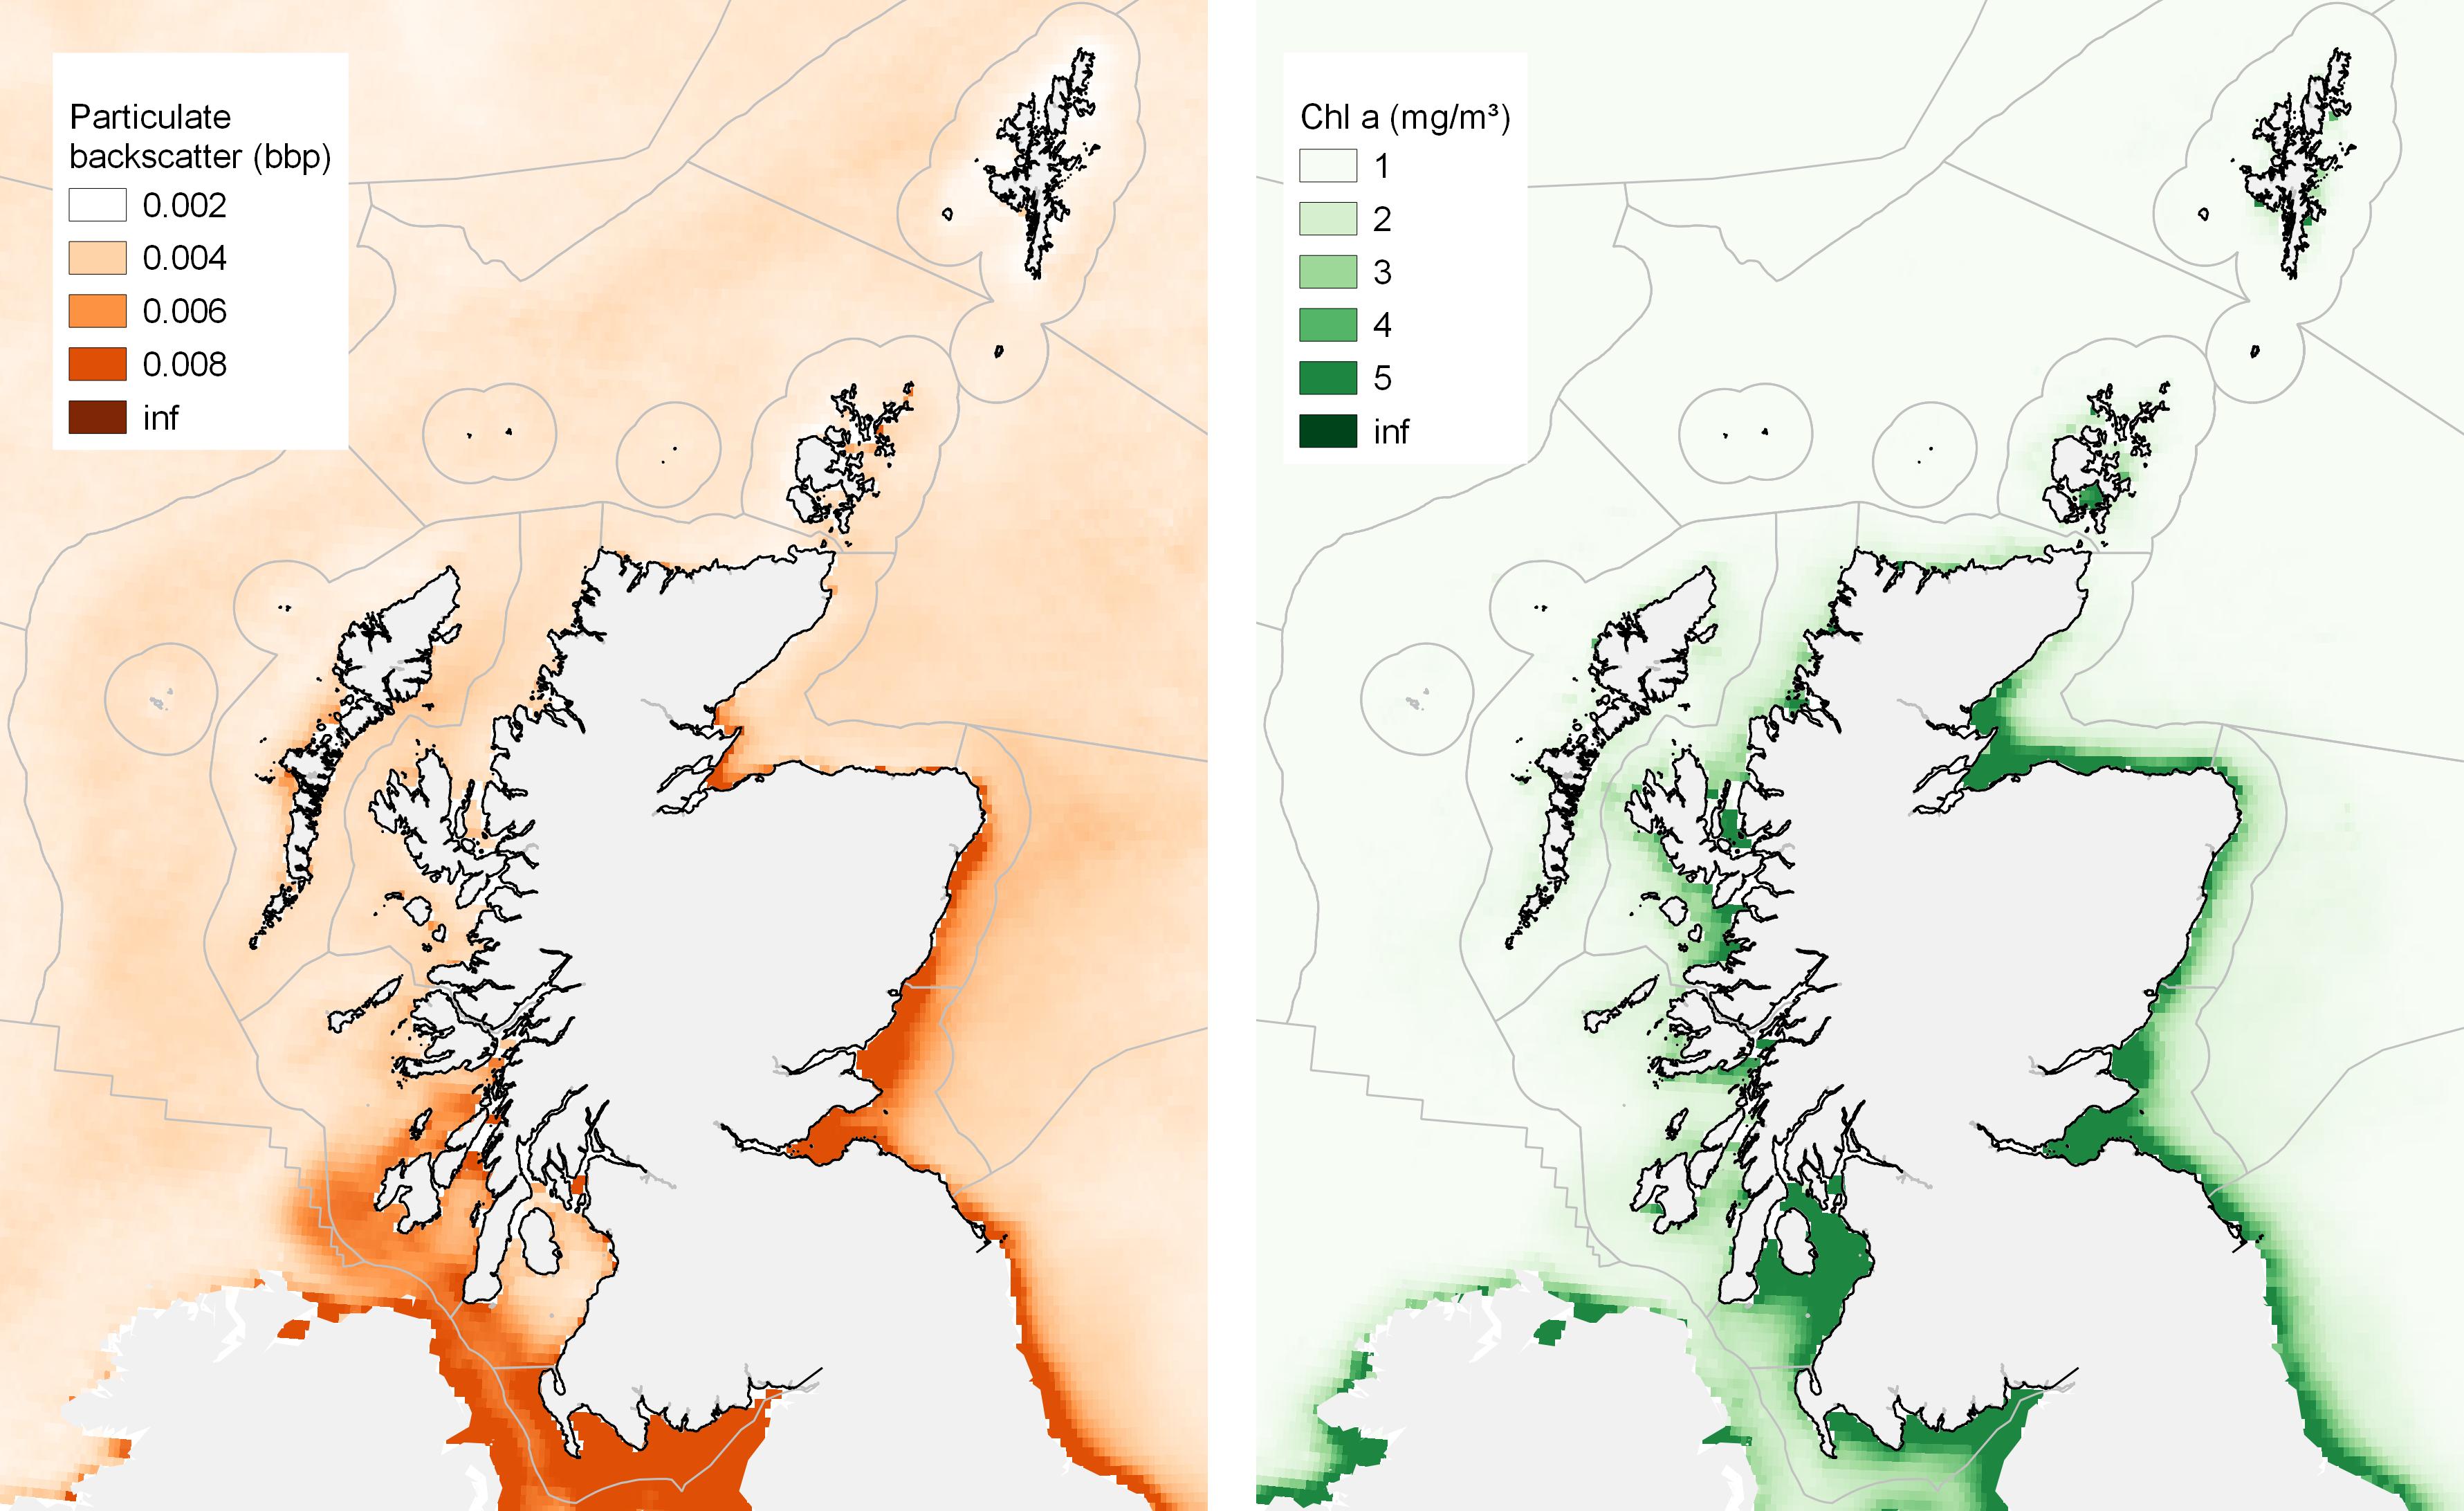 Light: satellite-derived estimates of (left) suspended sediment as a contribution to scattering of light at the sea surface (right) surface chlorophyll a